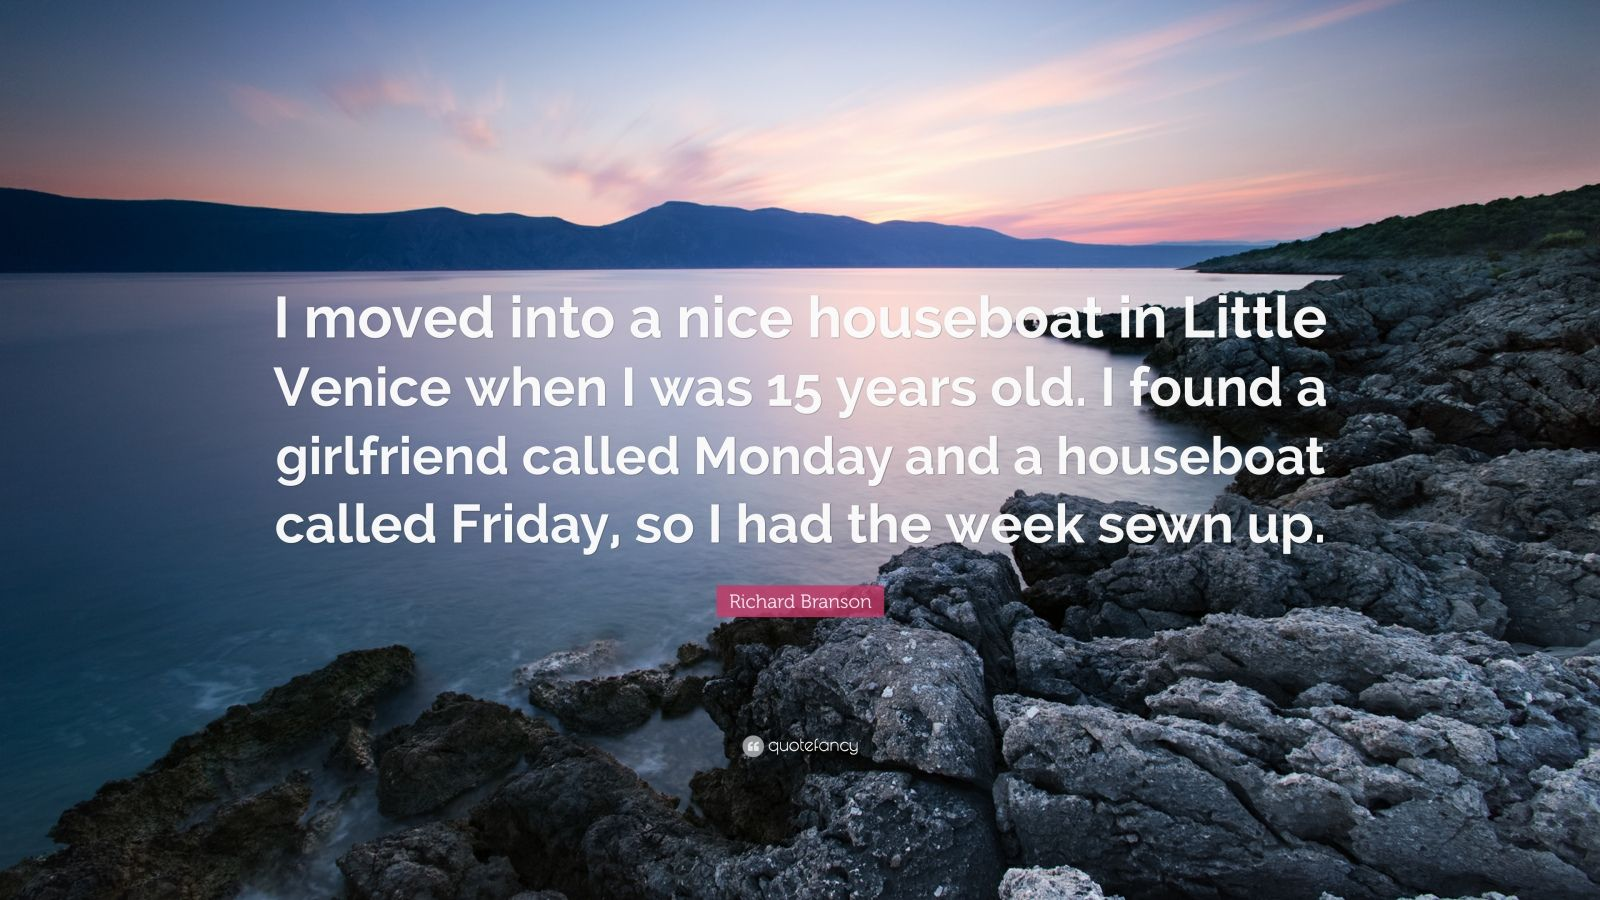 """Richard Branson Quote: """"I moved into a nice houseboat in Little Venice when I was 15 years old. I found a girlfriend called Monday and a houseboat called Friday, so I had the week sewn up."""""""